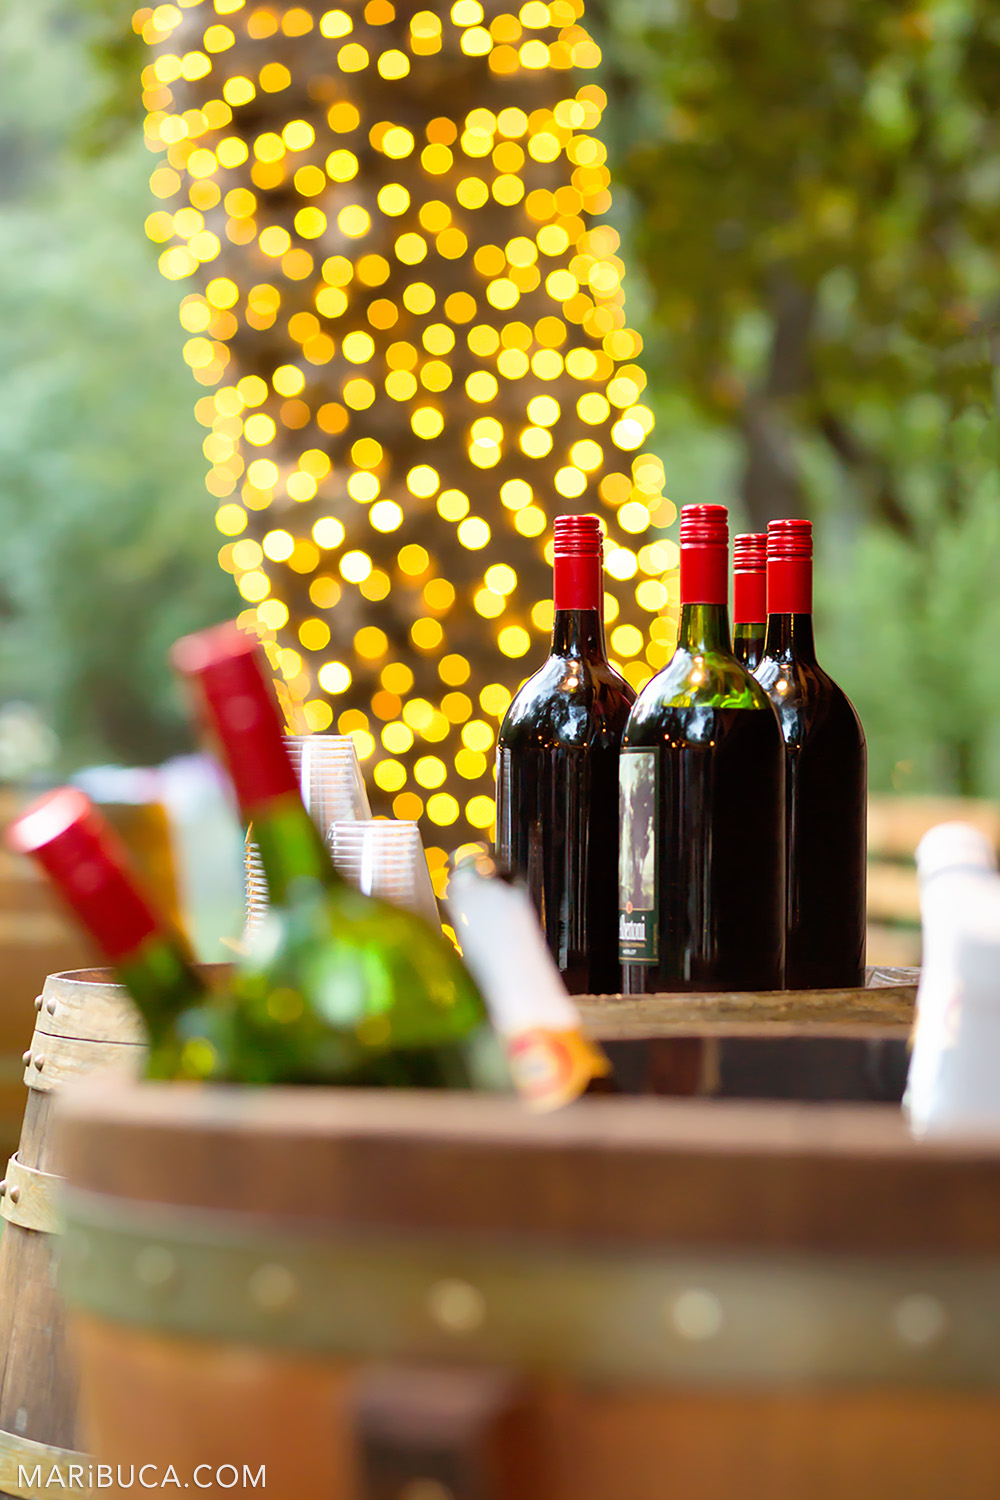 Bottle of wines surrounded yellow and orange lights in the Saratoga Springs Venue